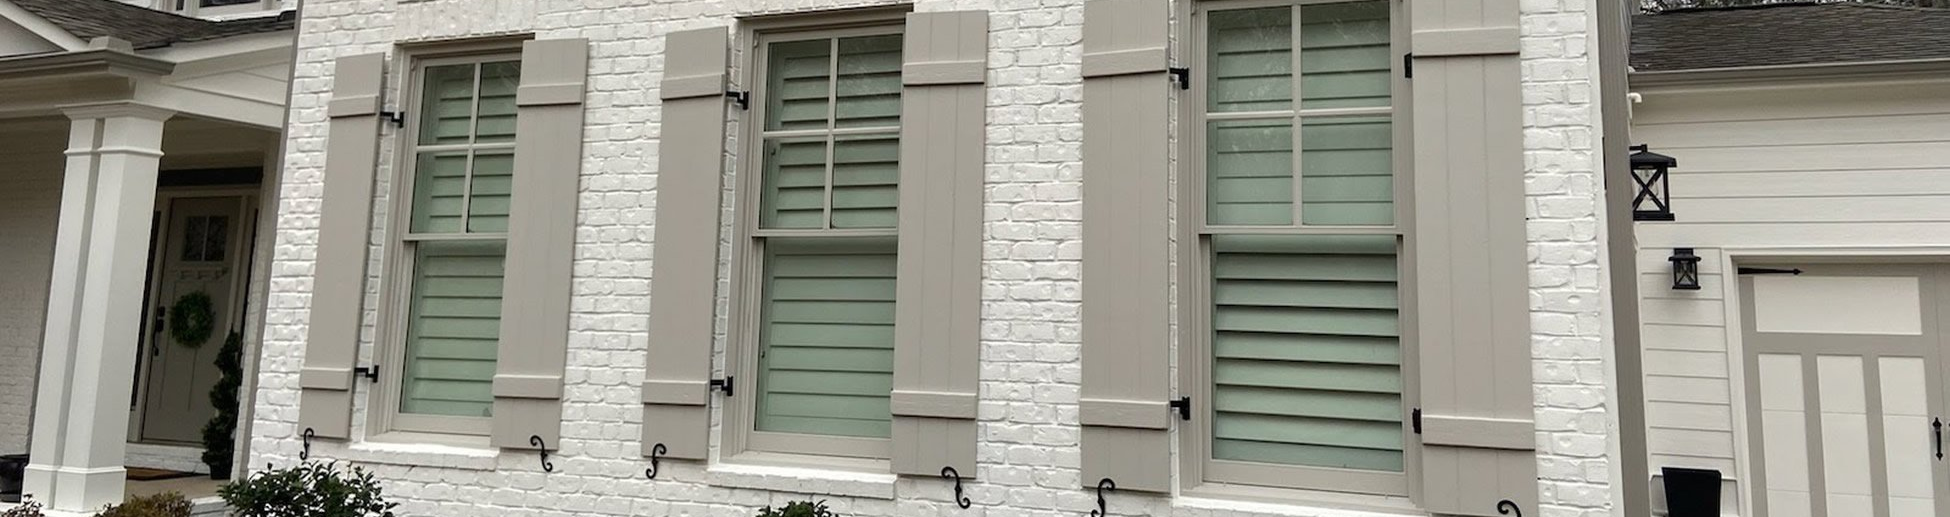 Wood Composite Shutters for Residential Windows